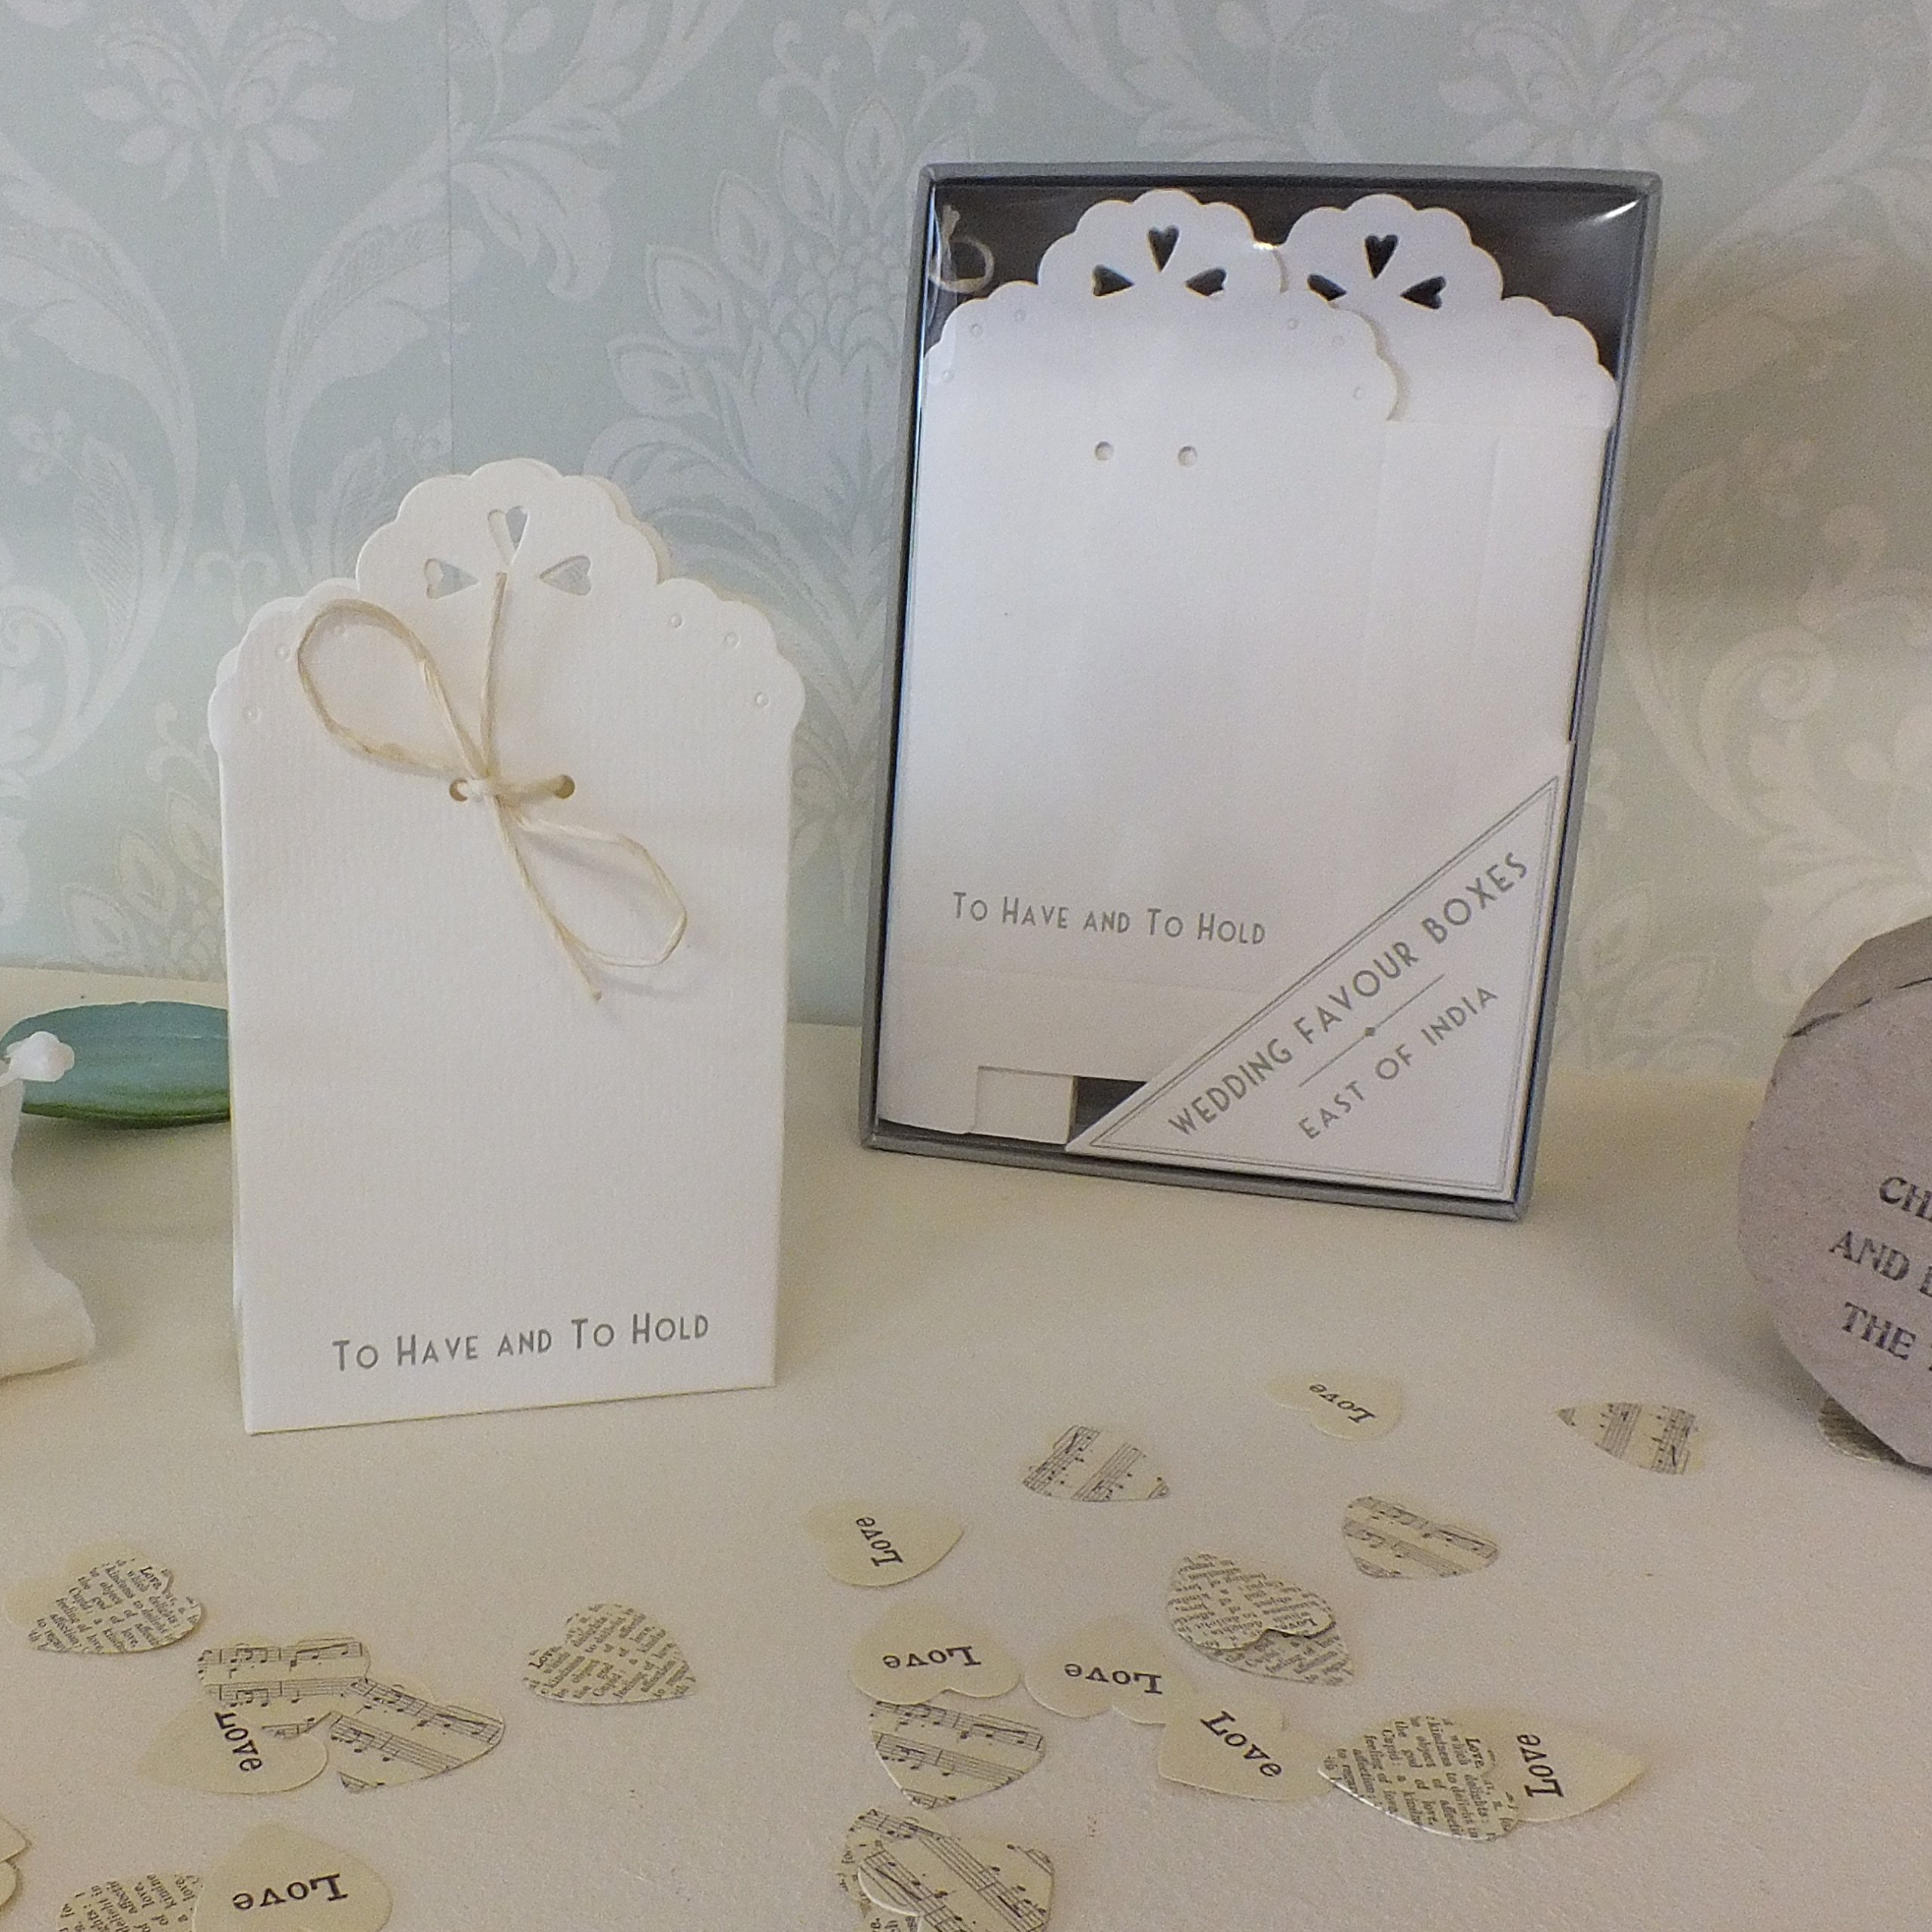 Wedding Favor Boxes - To Have And To Hold